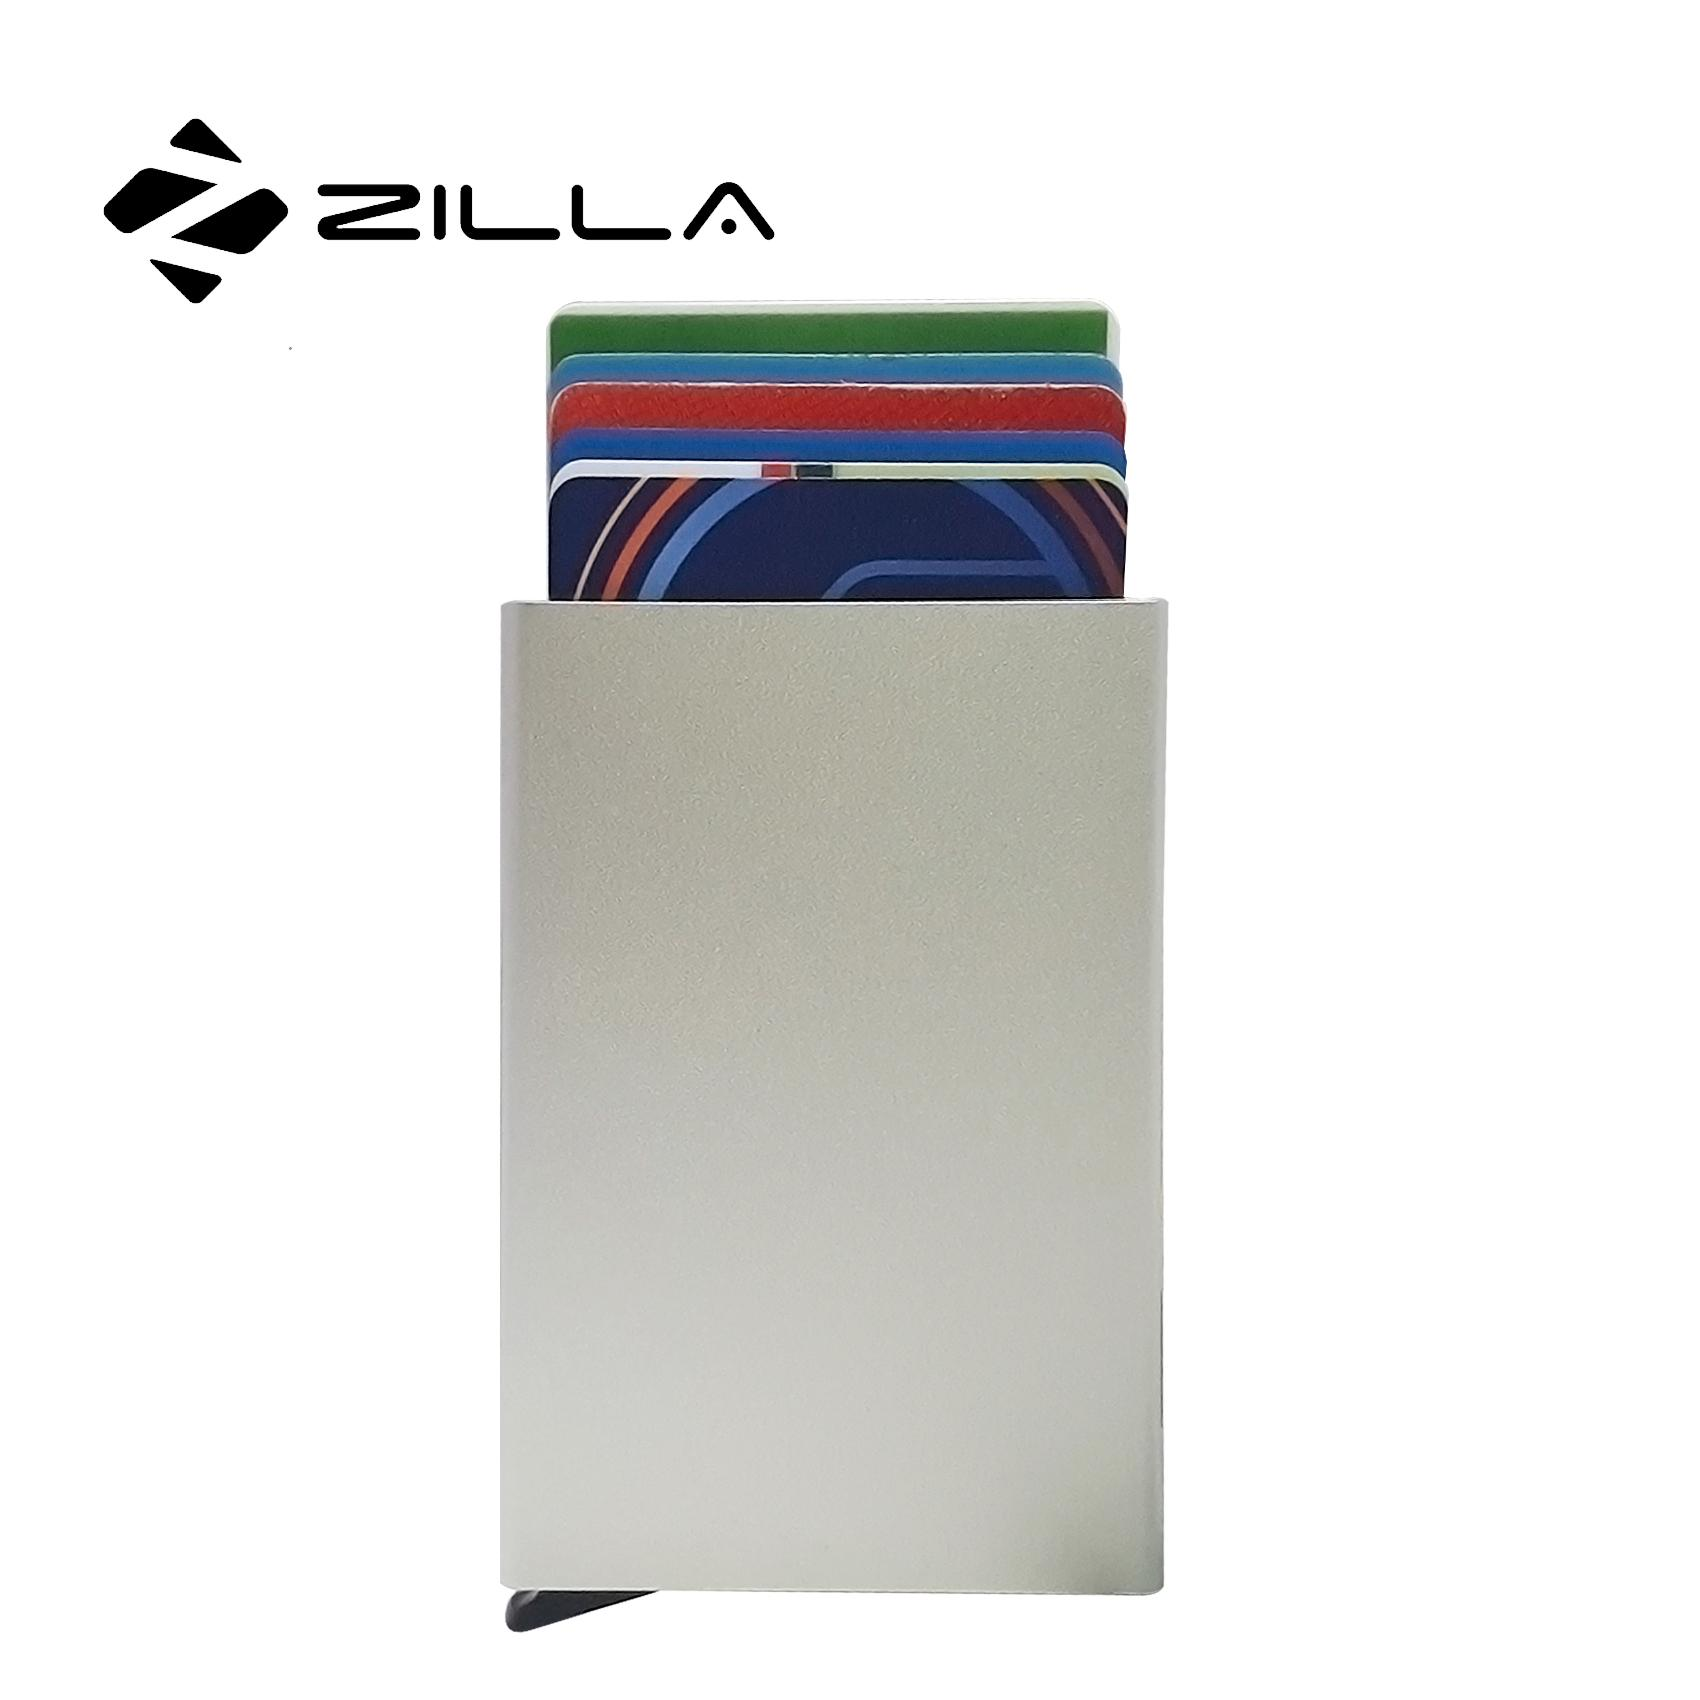 Mens Card Holders for sale - Mens Card Bags online brands, prices ...